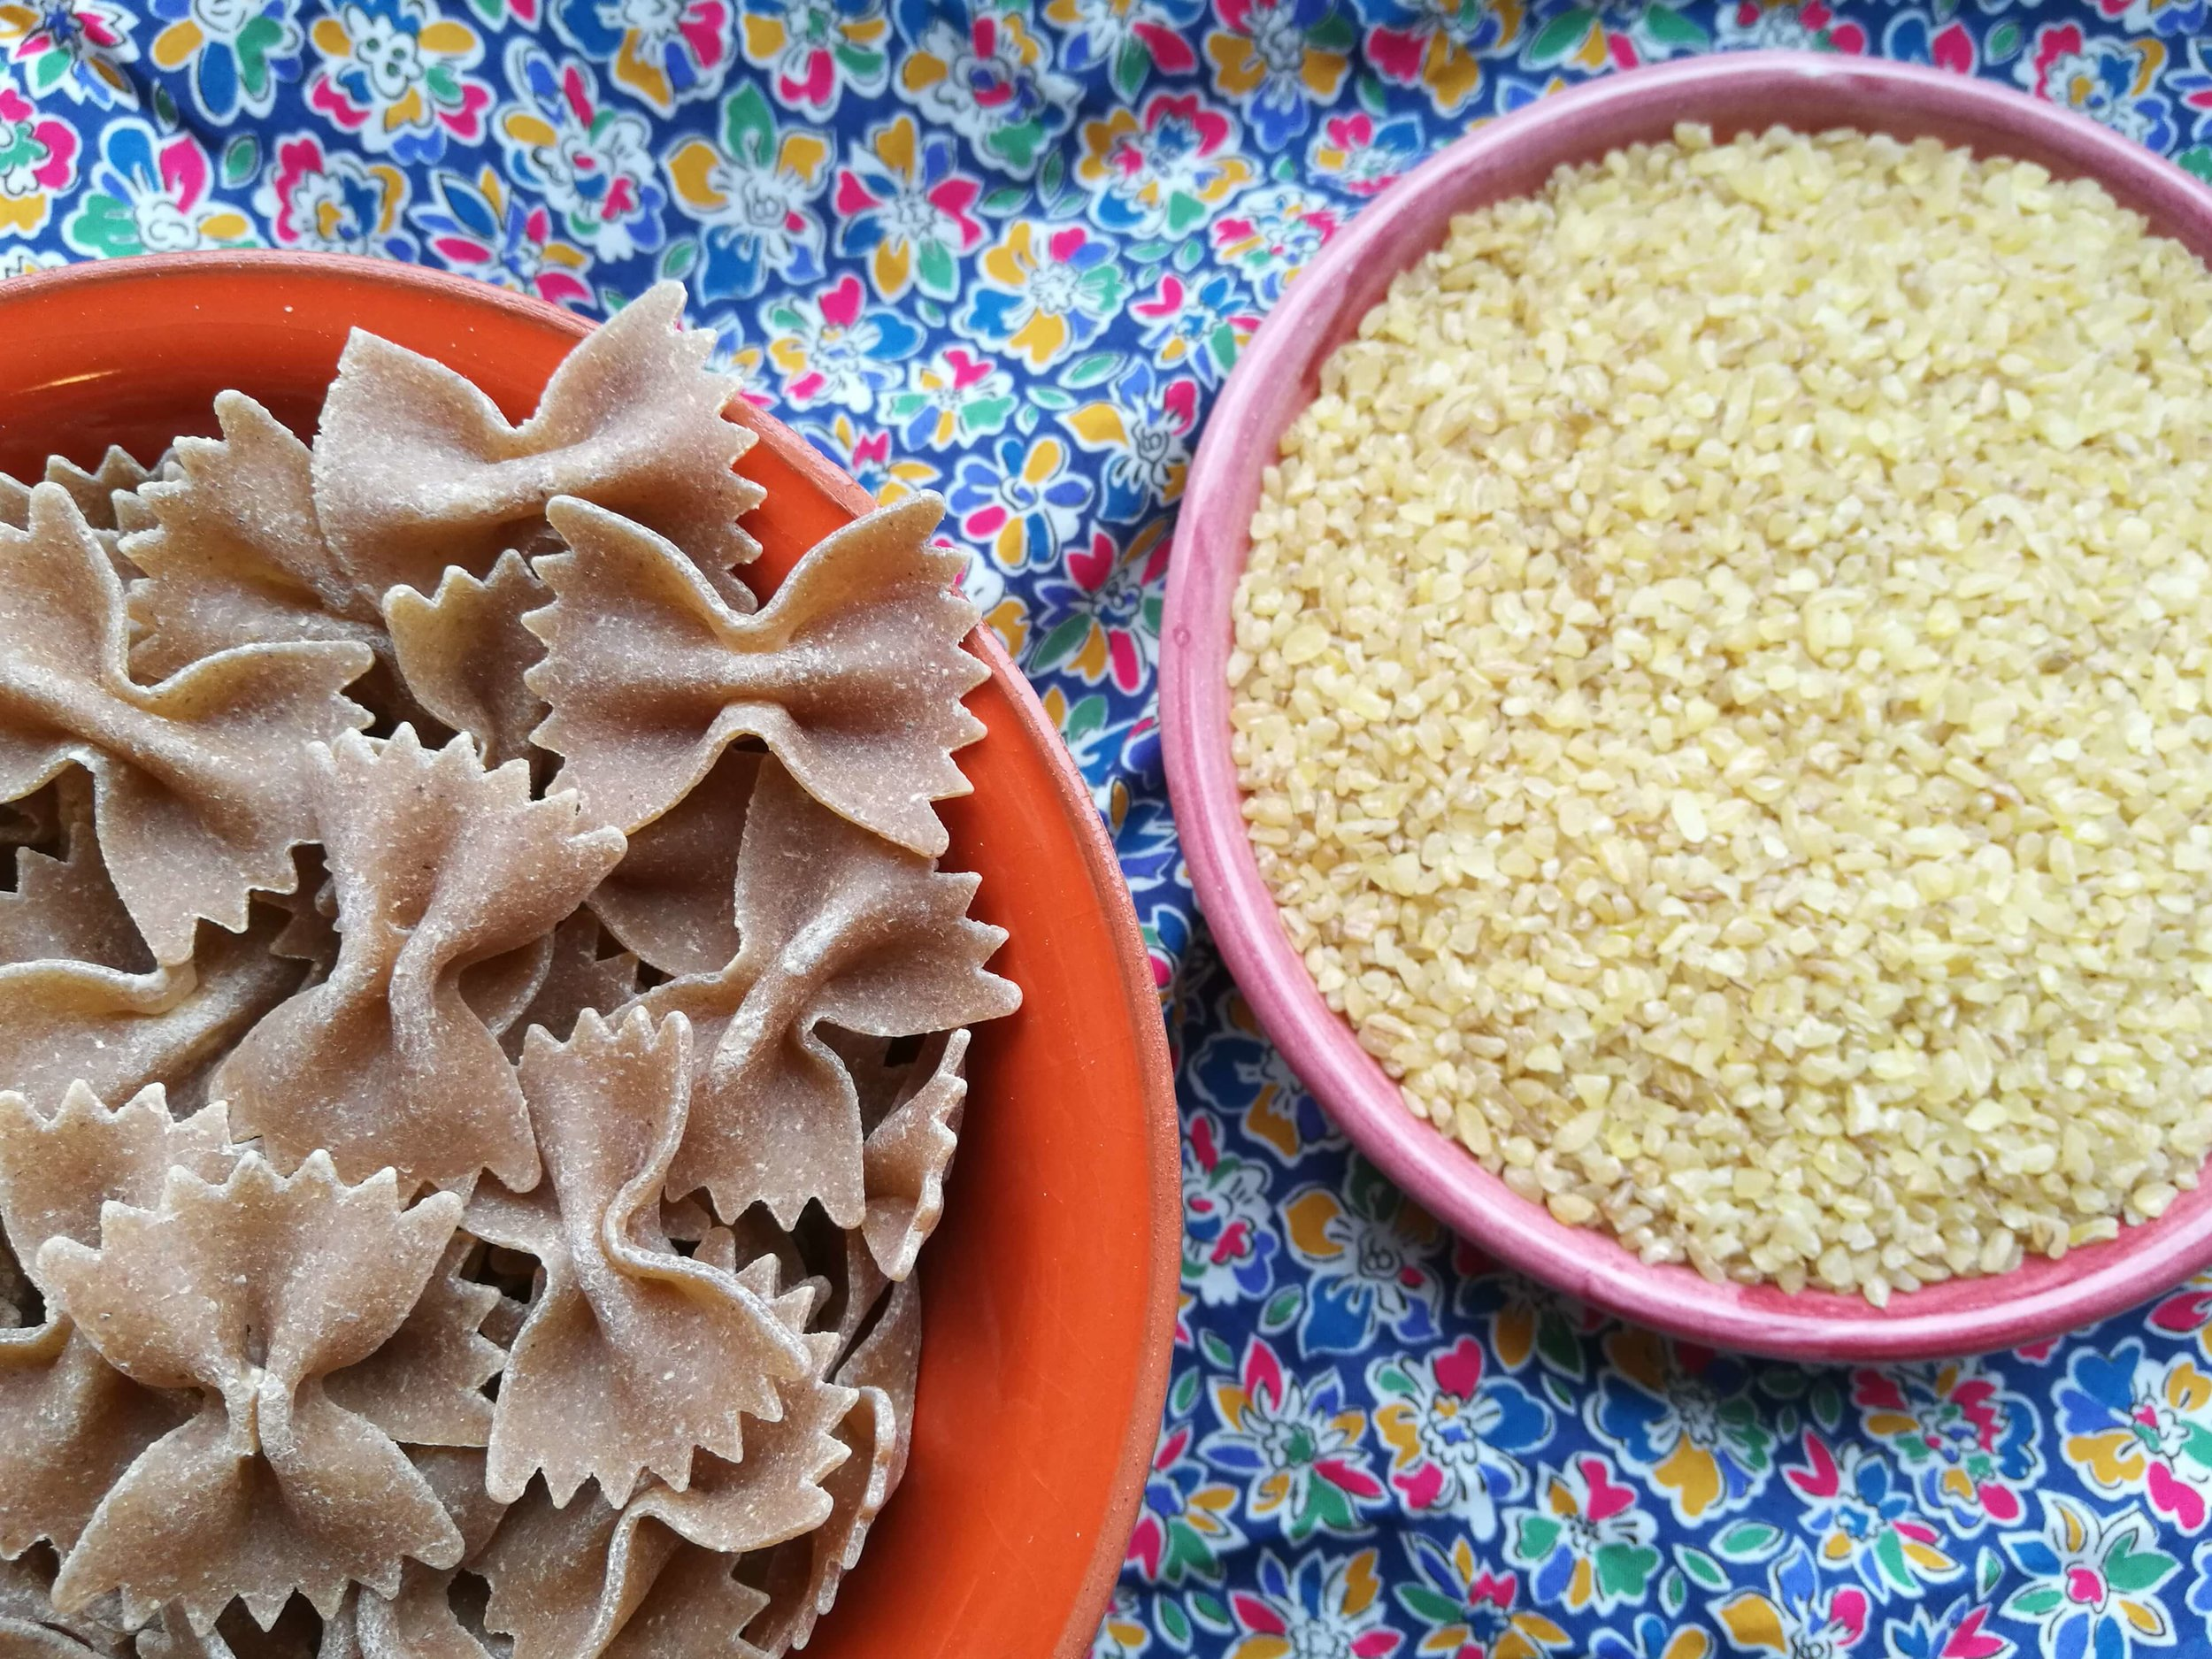 100% whole-wheat pasta bows and bulgur – just some of the whole grain protein sources out there.